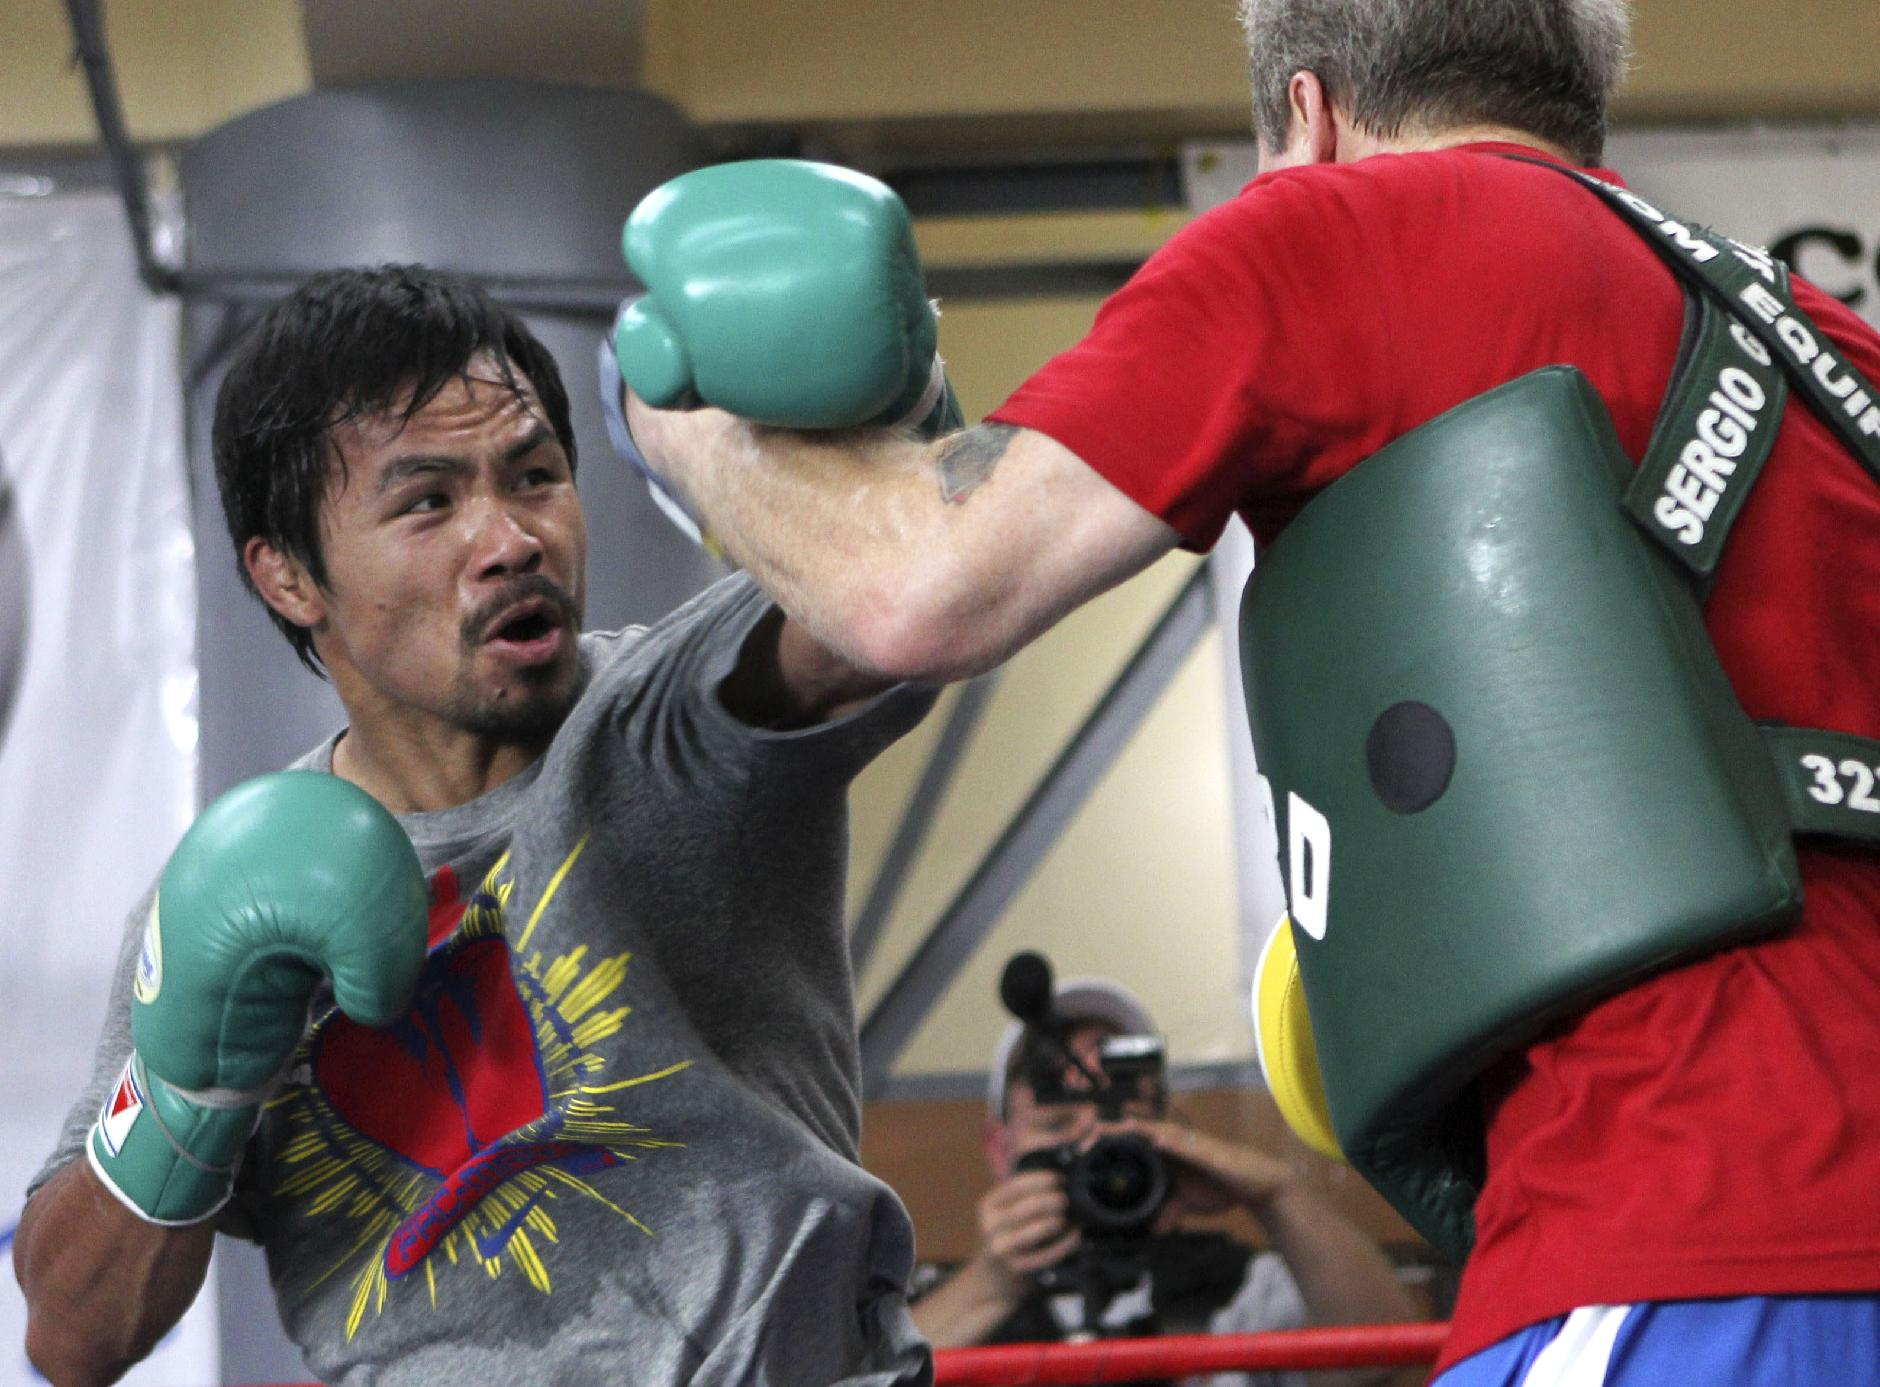 In this March 23, 2011 file photo, Filipino boxer Manny Pacquiao, left, trains with coach Freddie Roach in Baguio, northern Philippines. Pacquiao is dedicating his comeback fight against Brandon Rios to the victims of the devastating typhoon that has left hundreds of thousands displaced in his native Philippines. The eight-division champion is in camp in the southern Philippines - only about 320 kilometers (200 miles) from where Typhoon Haiyan caused the most destruction - for the Nov. 24, 2013 bout in Macau